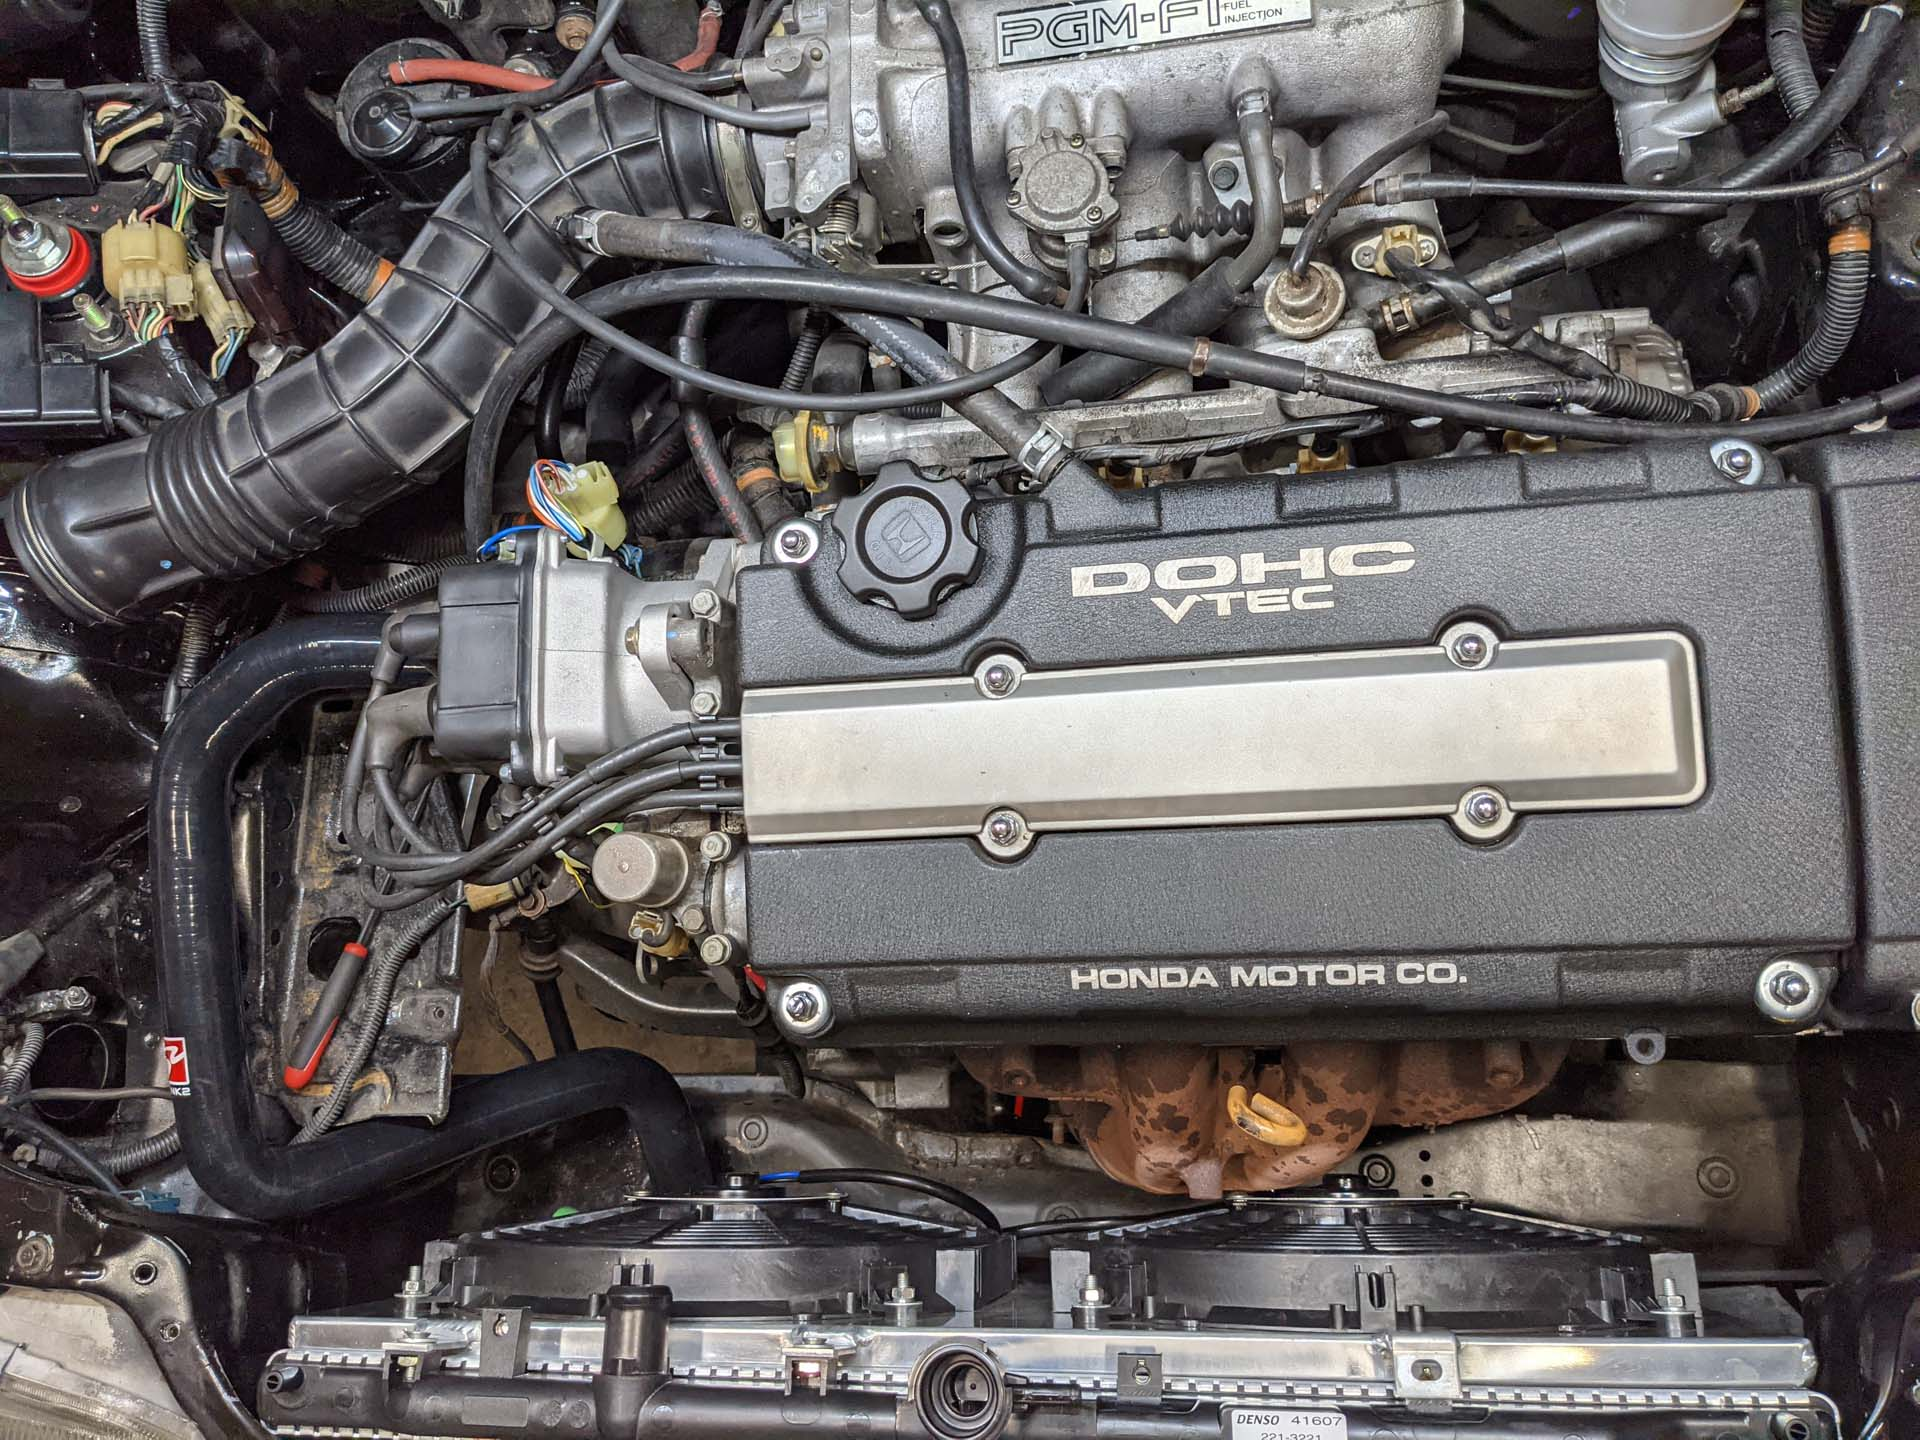 B16A manifold clearance issues